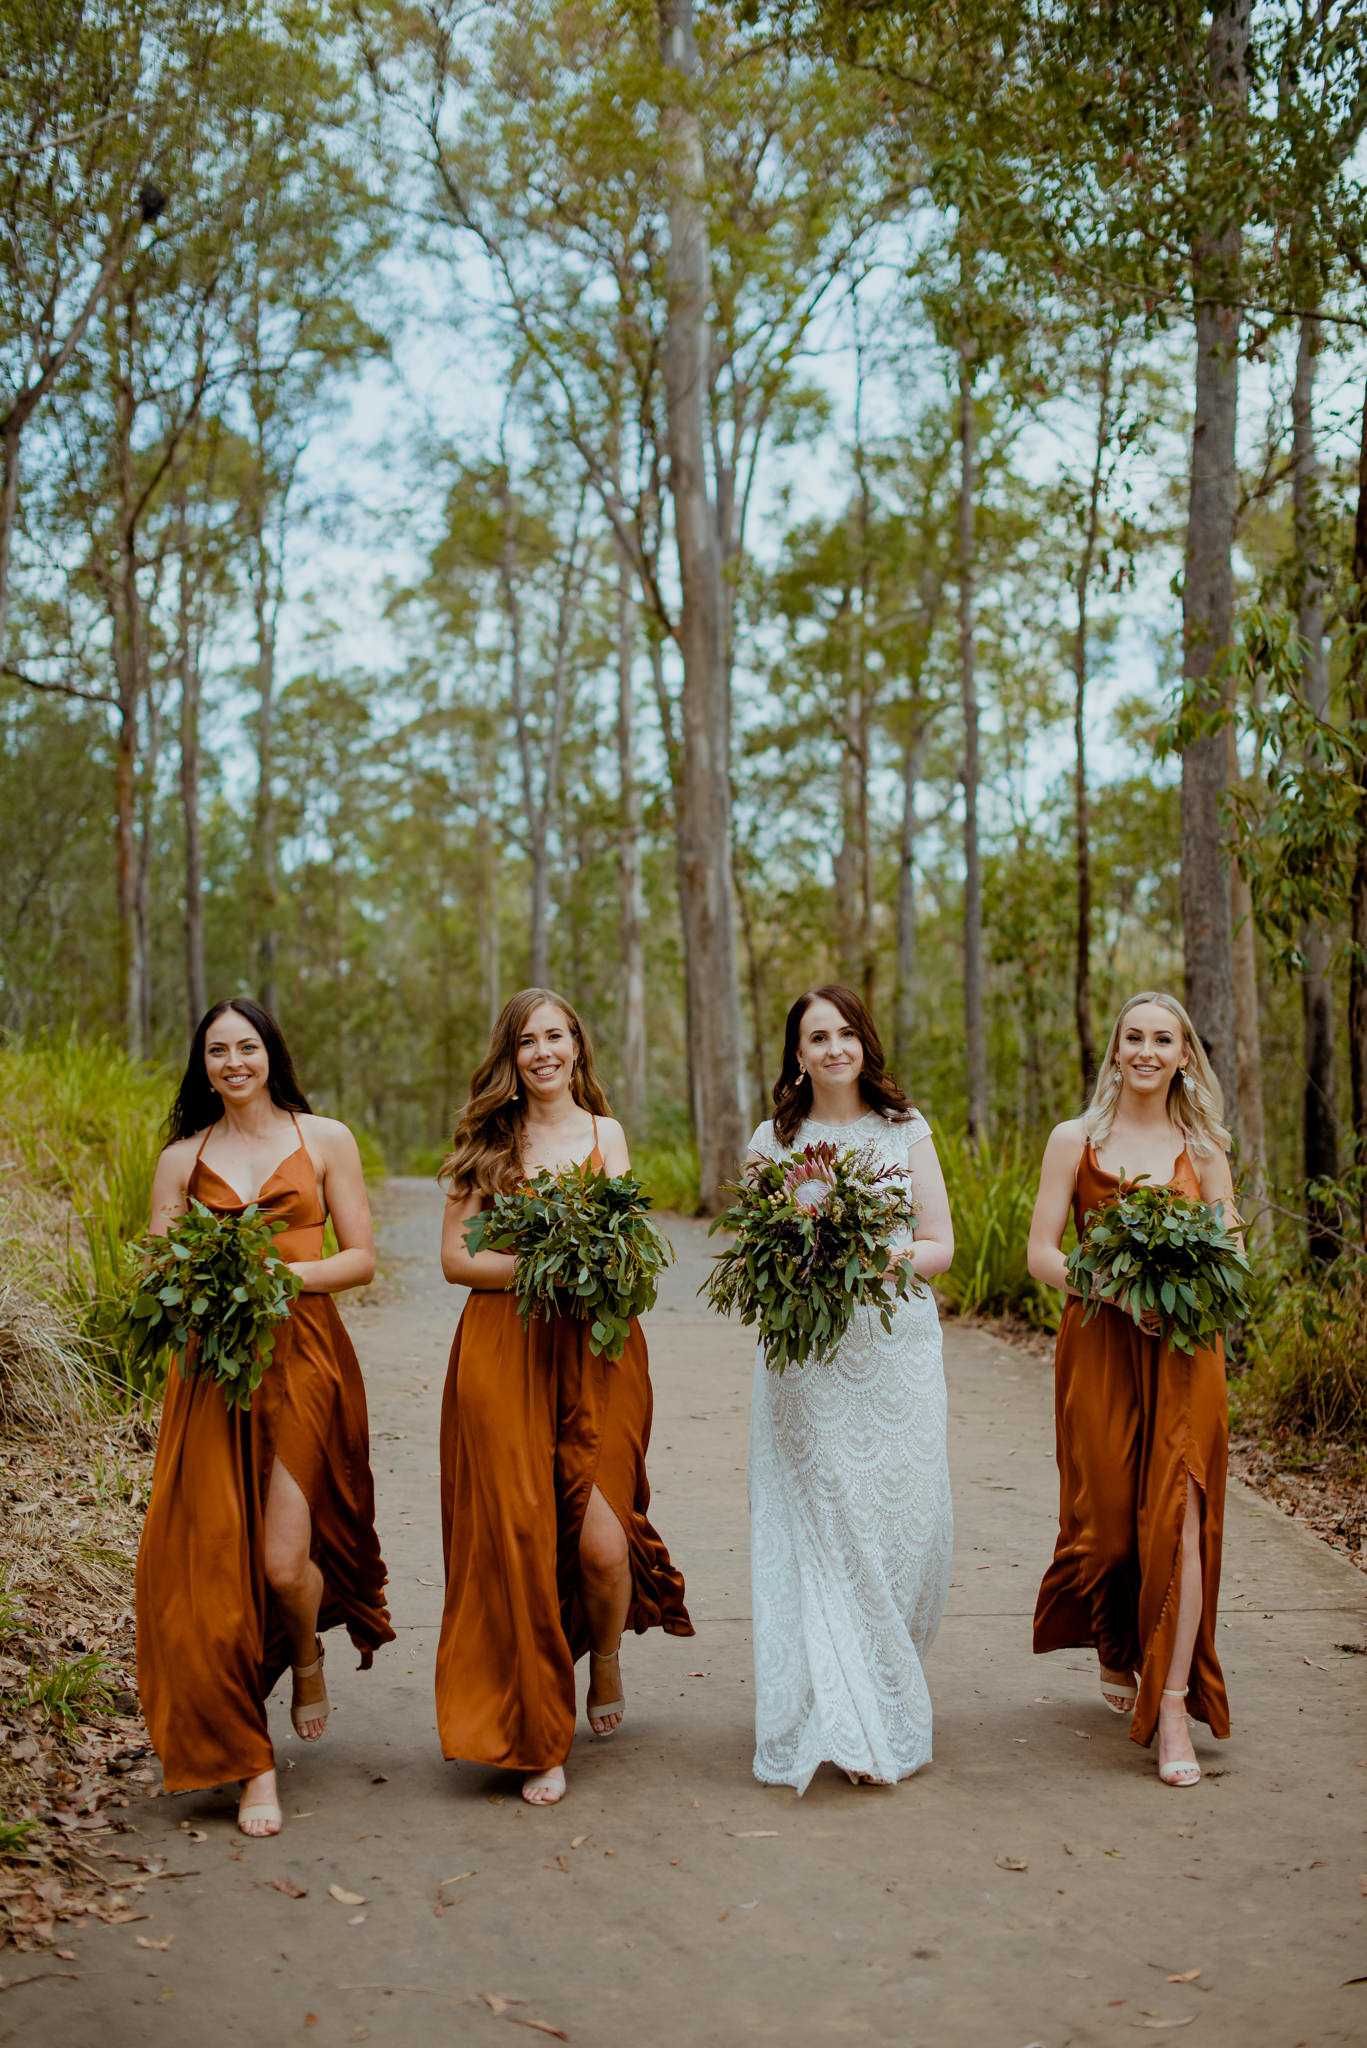 Bridesmaids in orange dresses walk down a path with a happy bride